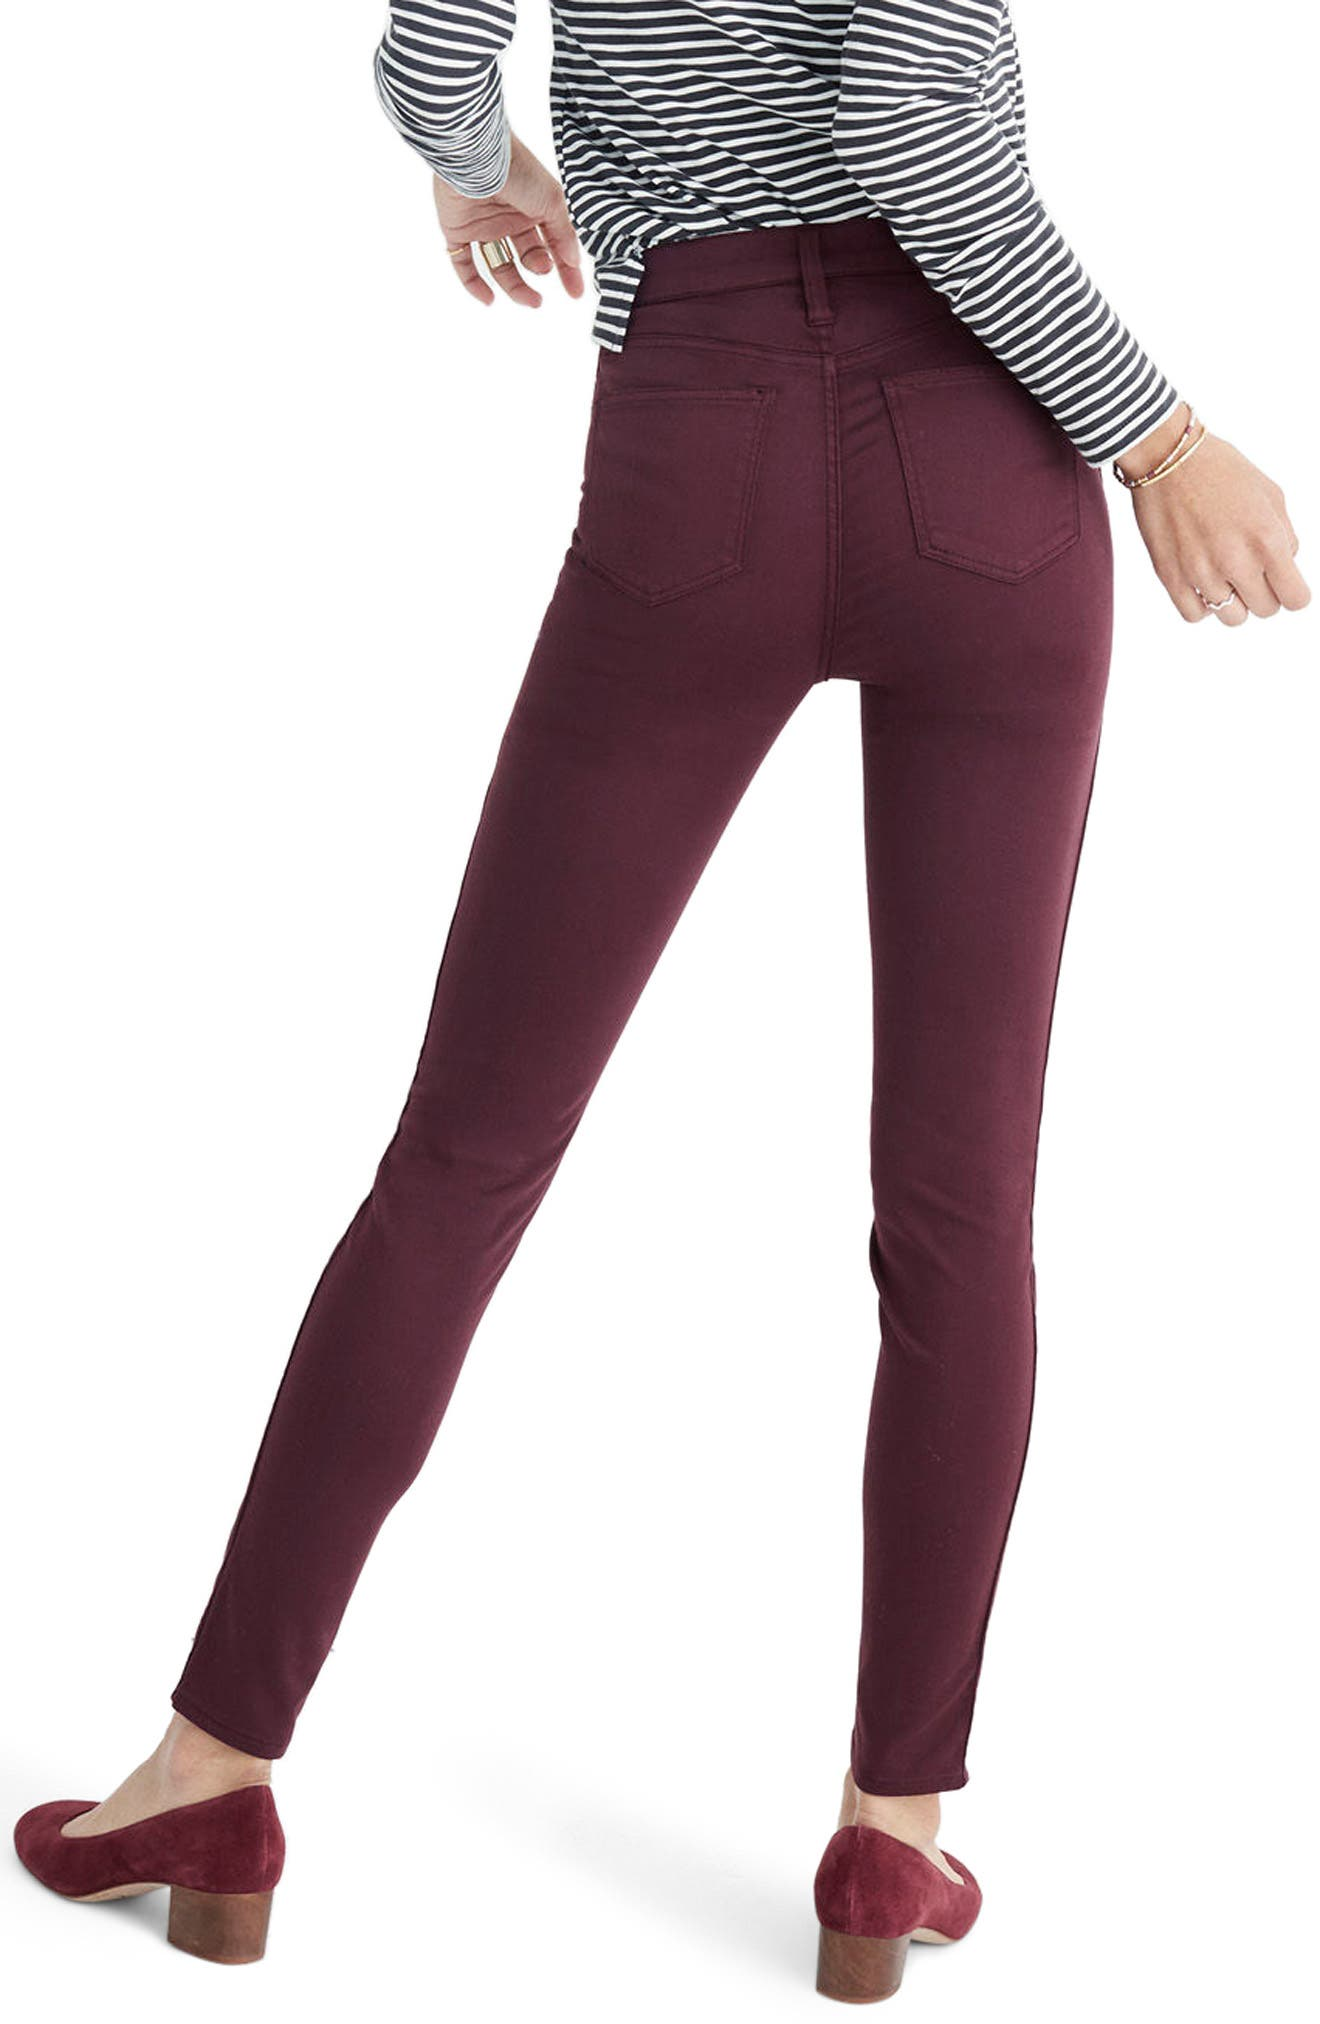 10-Inch High Waist Skinny Sateen Jeans,                             Alternate thumbnail 2, color,                             500